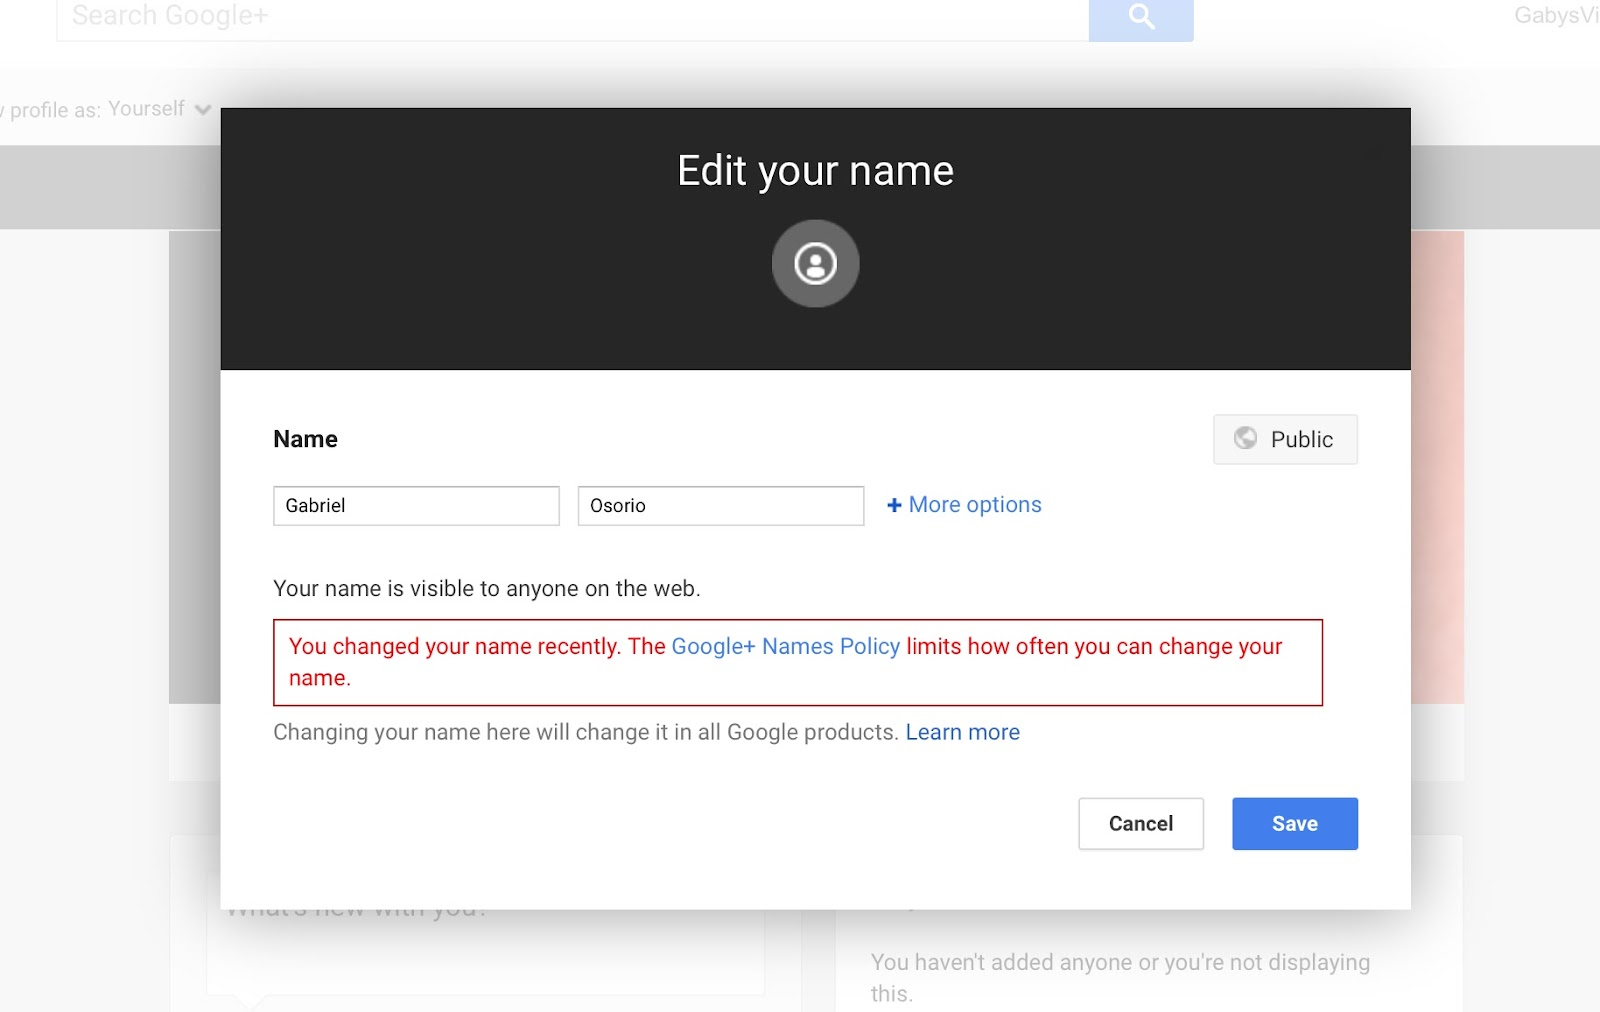 PLEASE HELP: im trying to change my google accounts name